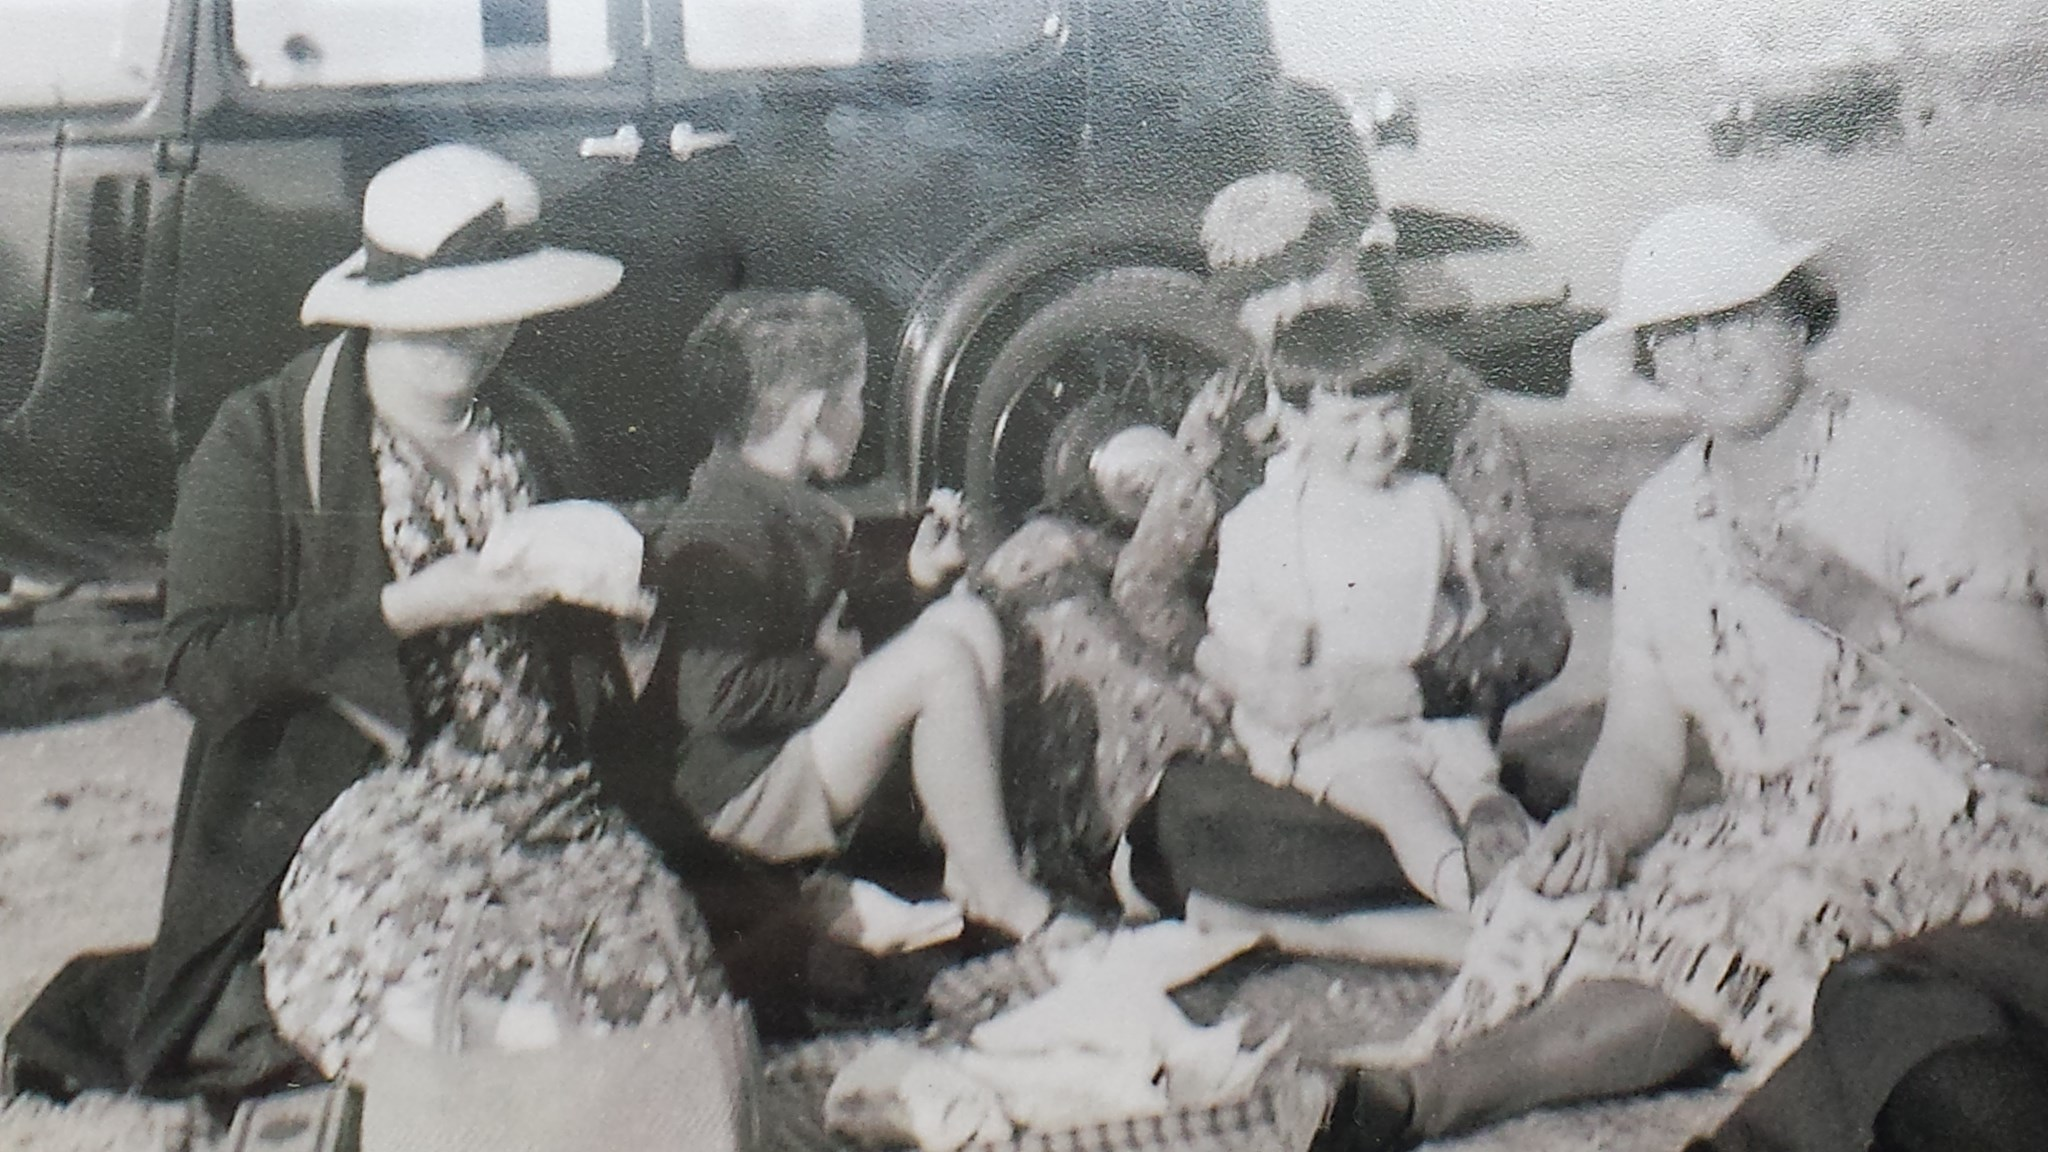 Dad on the beach with the car! He is on the family's maid Florrie's lap, with his mum, brother John and i